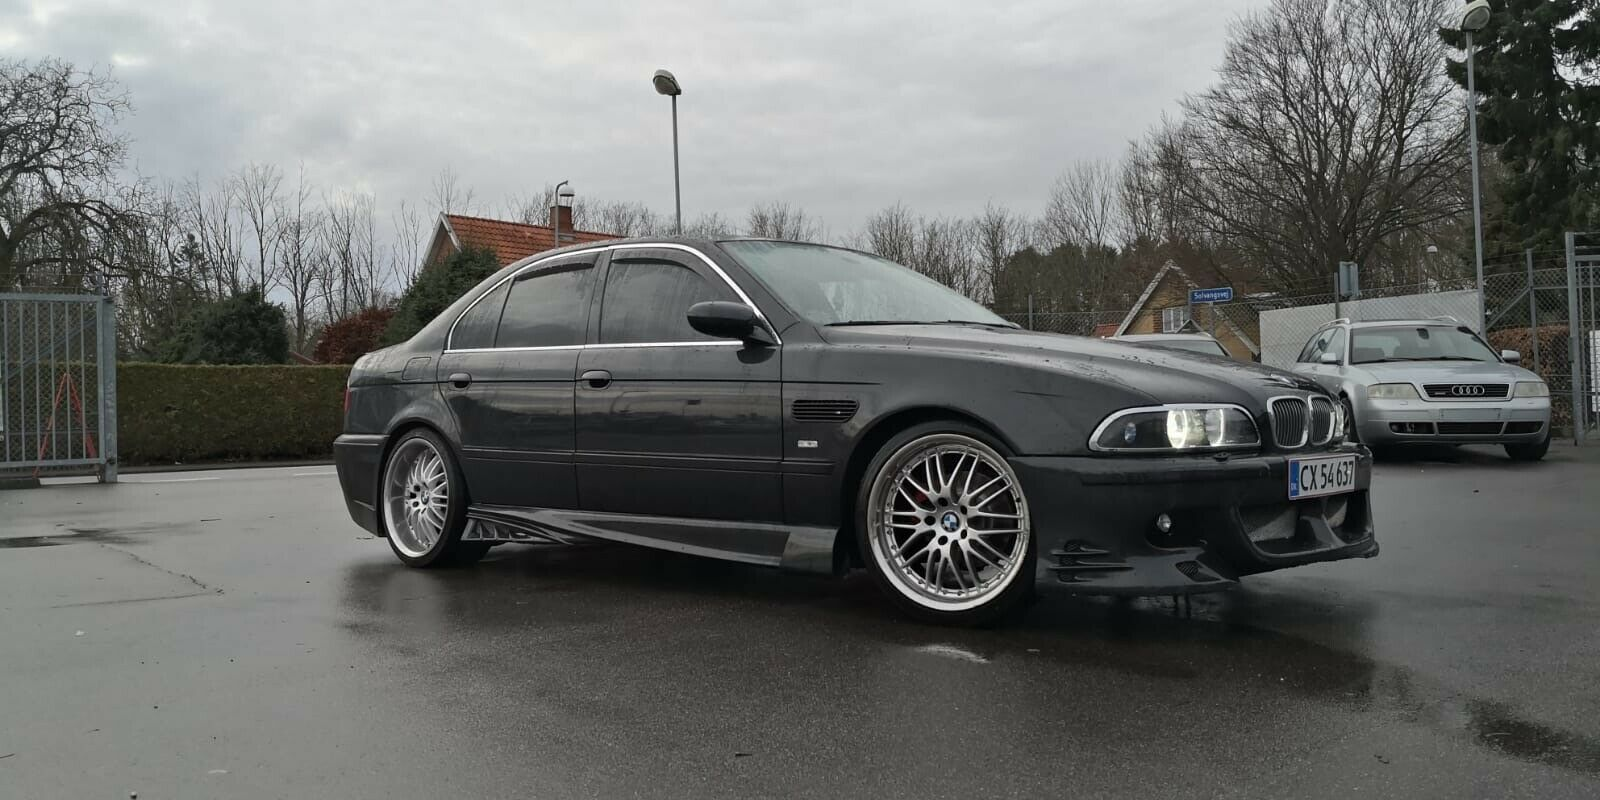 BMW 528i 2,8 Touring Steptr. 5d - 48.000 kr.